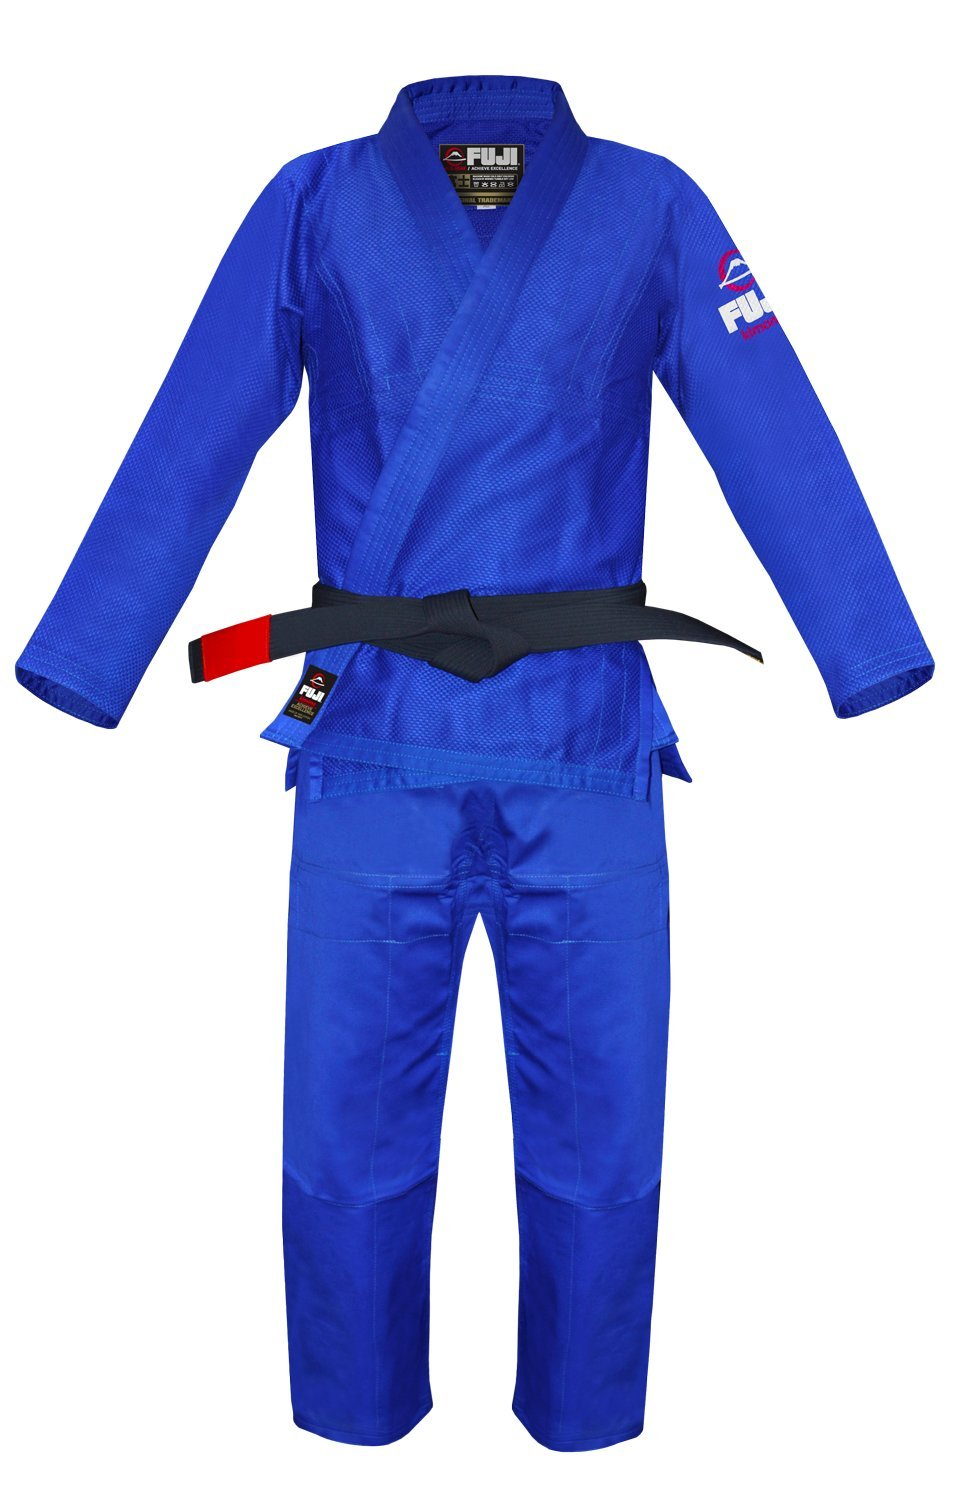 Fuji BJJ Uniform, Blue, A4